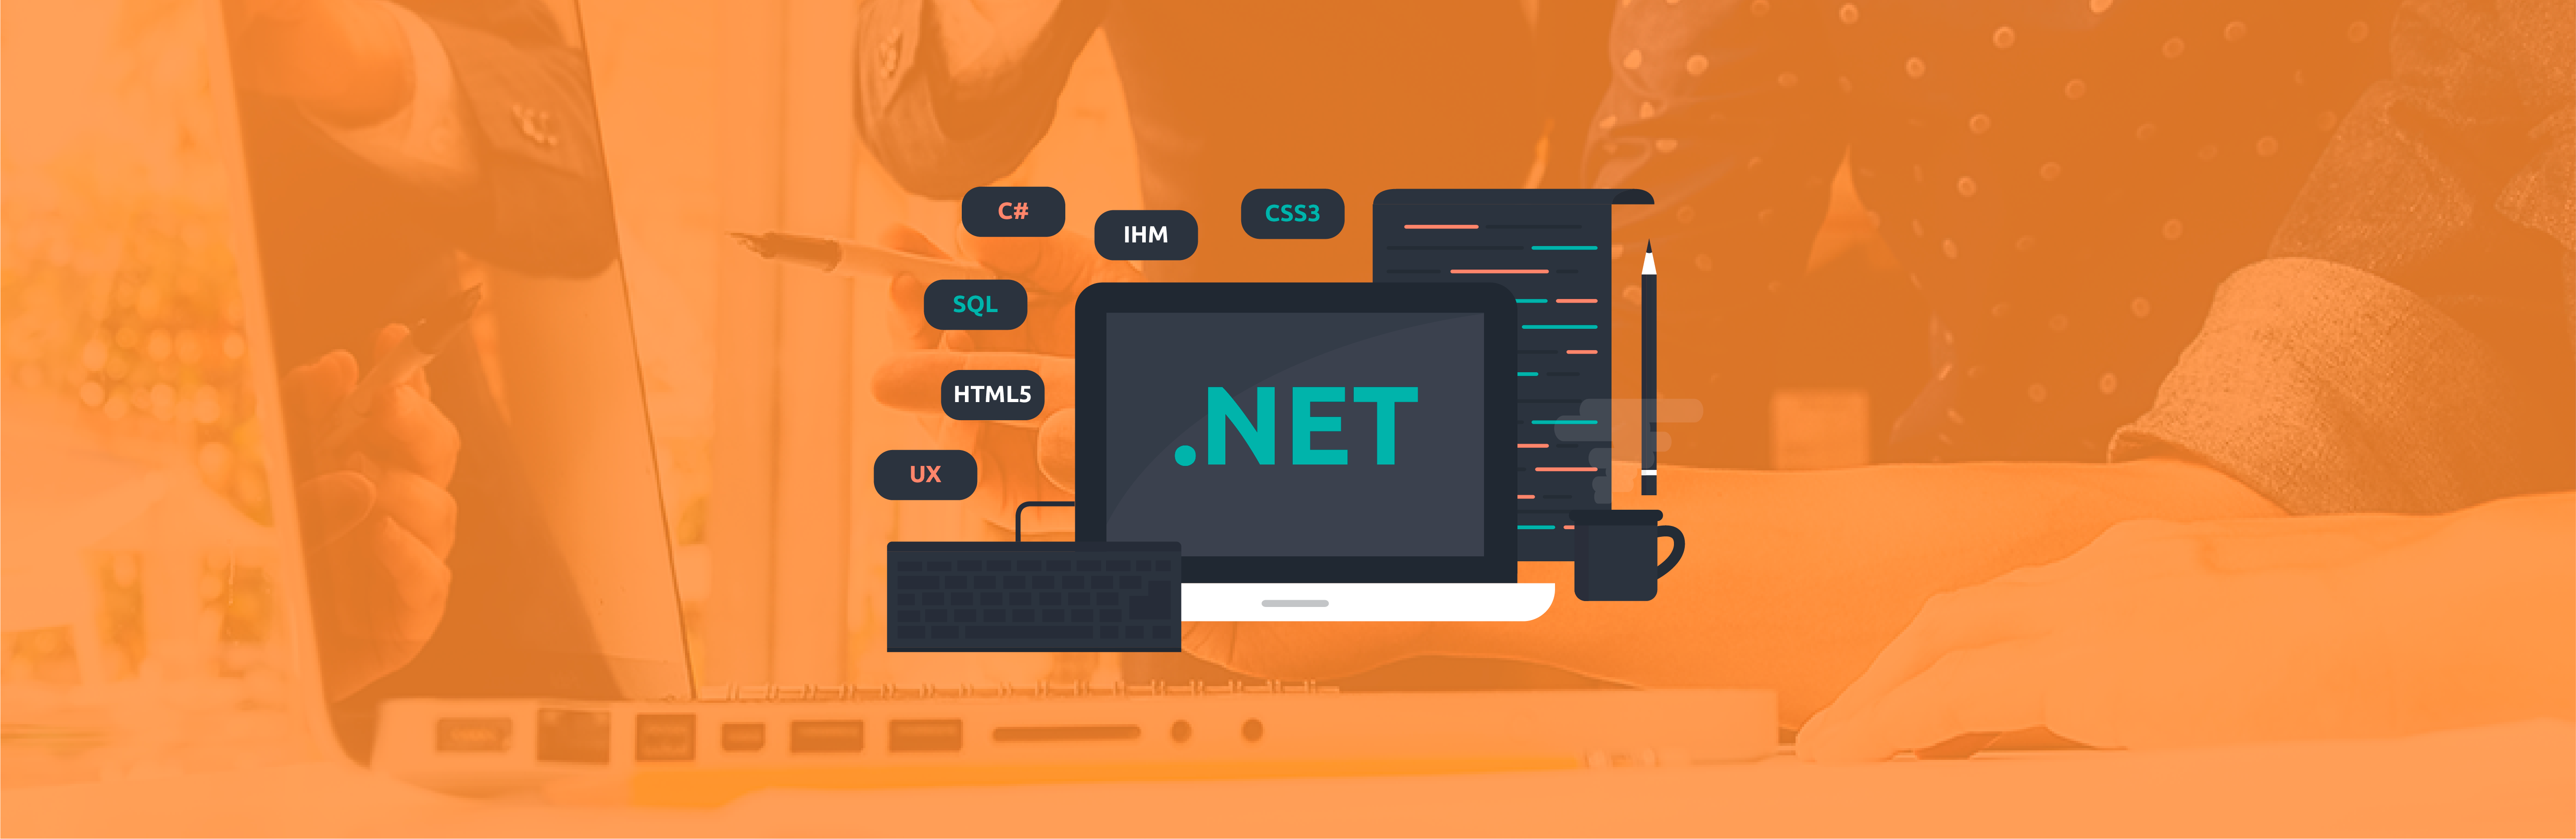 Banner-Page-NET